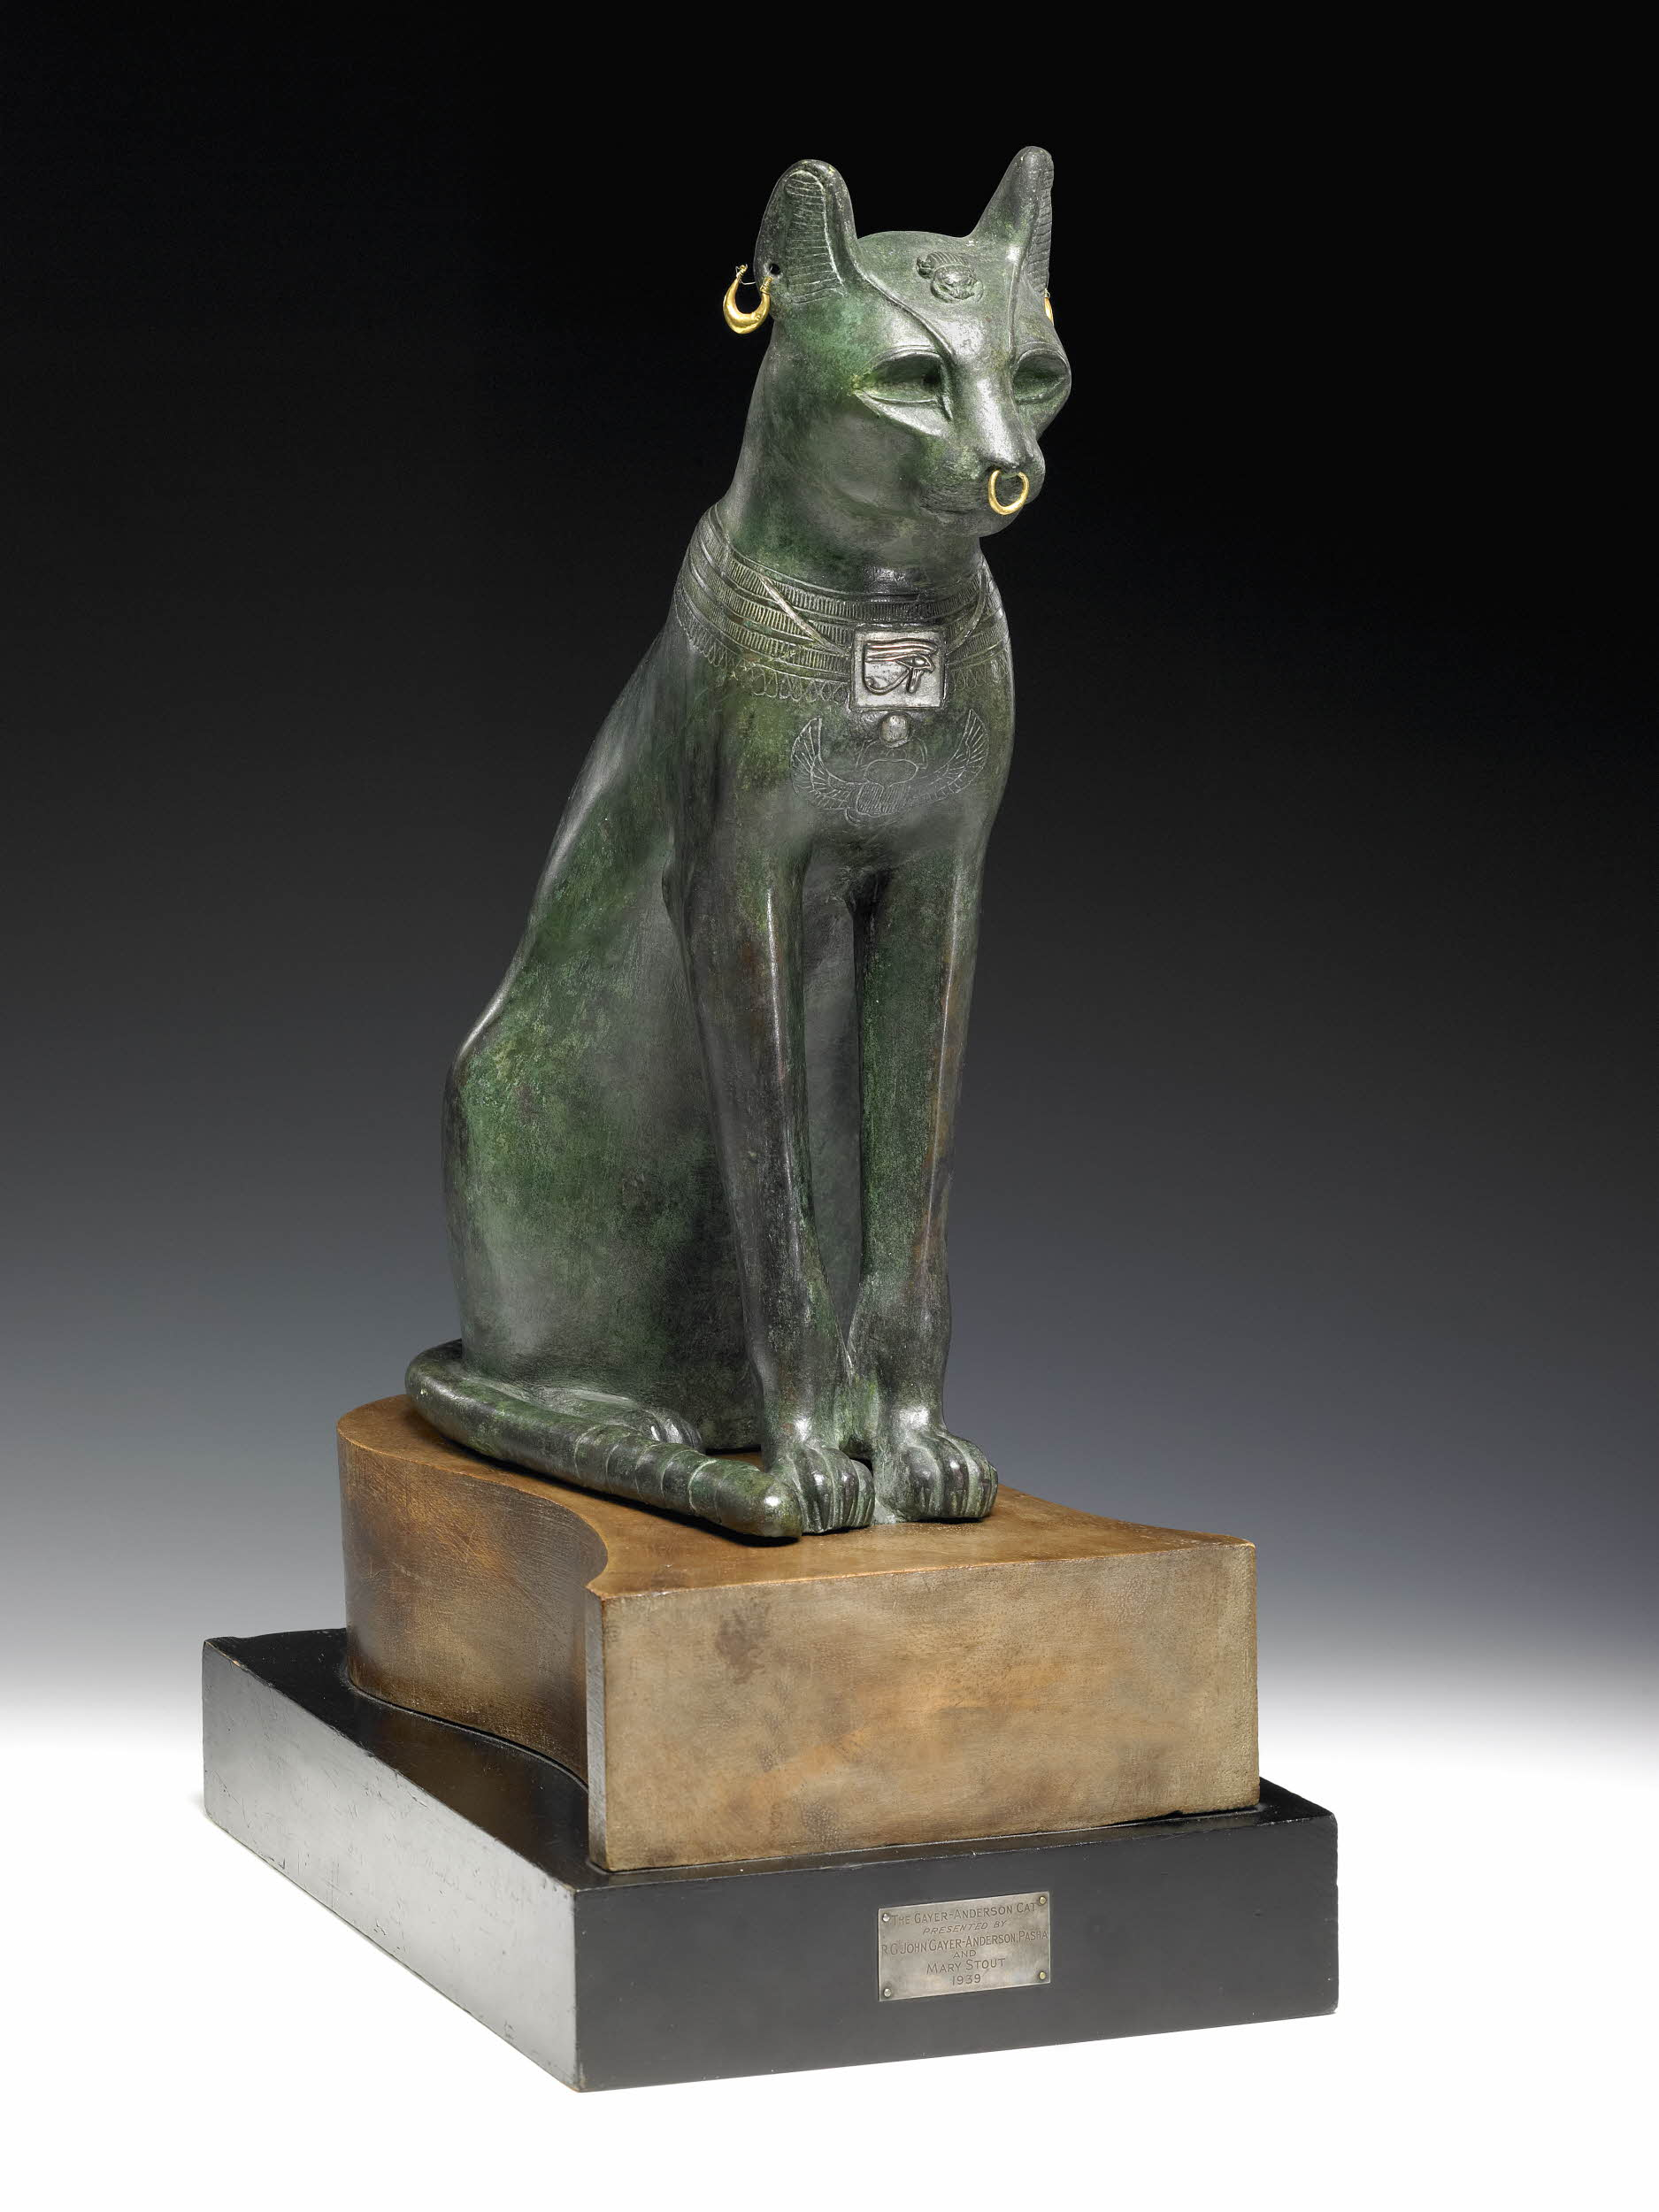 Bastet, or Bast, the cat goddess of domesticity, women's secrets, fertility, and (of course) cats, fertility, and childbirth. She protects the home from evil spirits and disease. So, not a lady you want to make angry. - Courtesy of the British Museum.